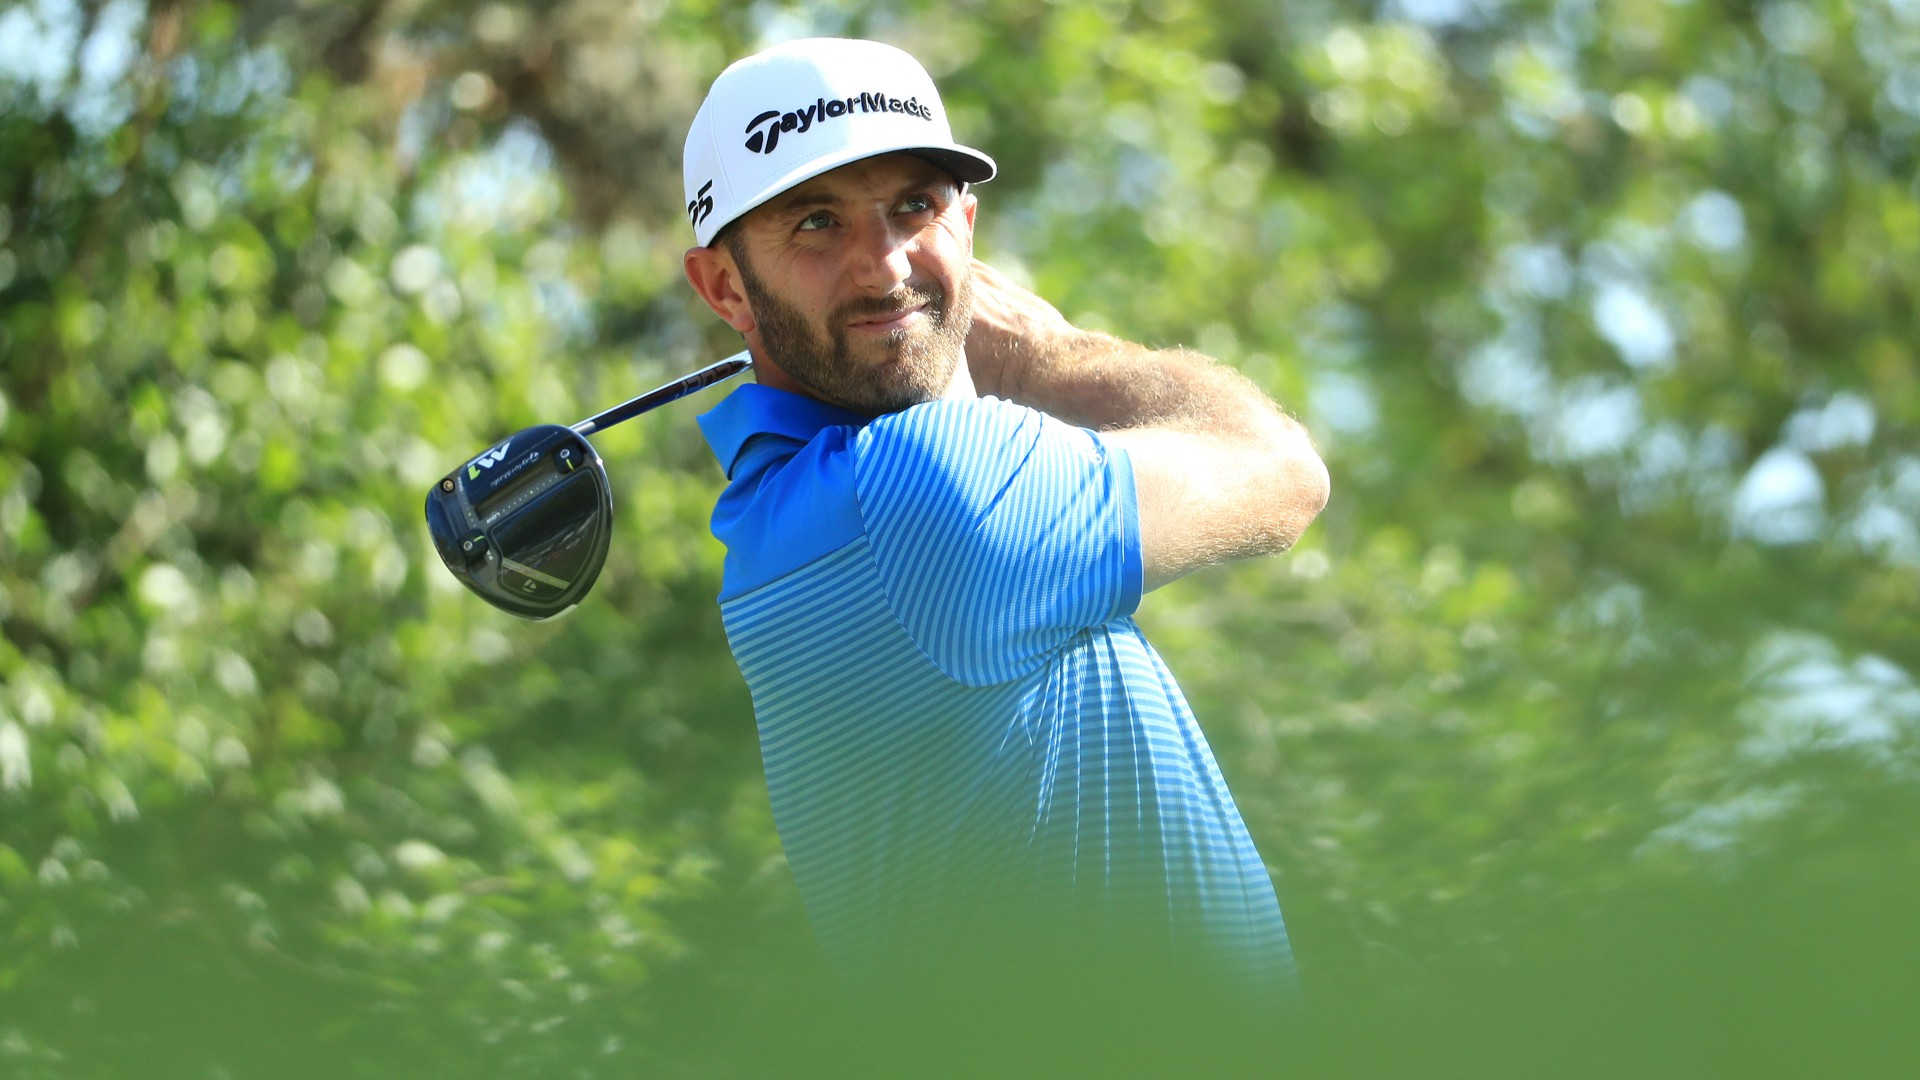 Dustin Johnson, The Masters, TaylorMade M1 2017 Driver